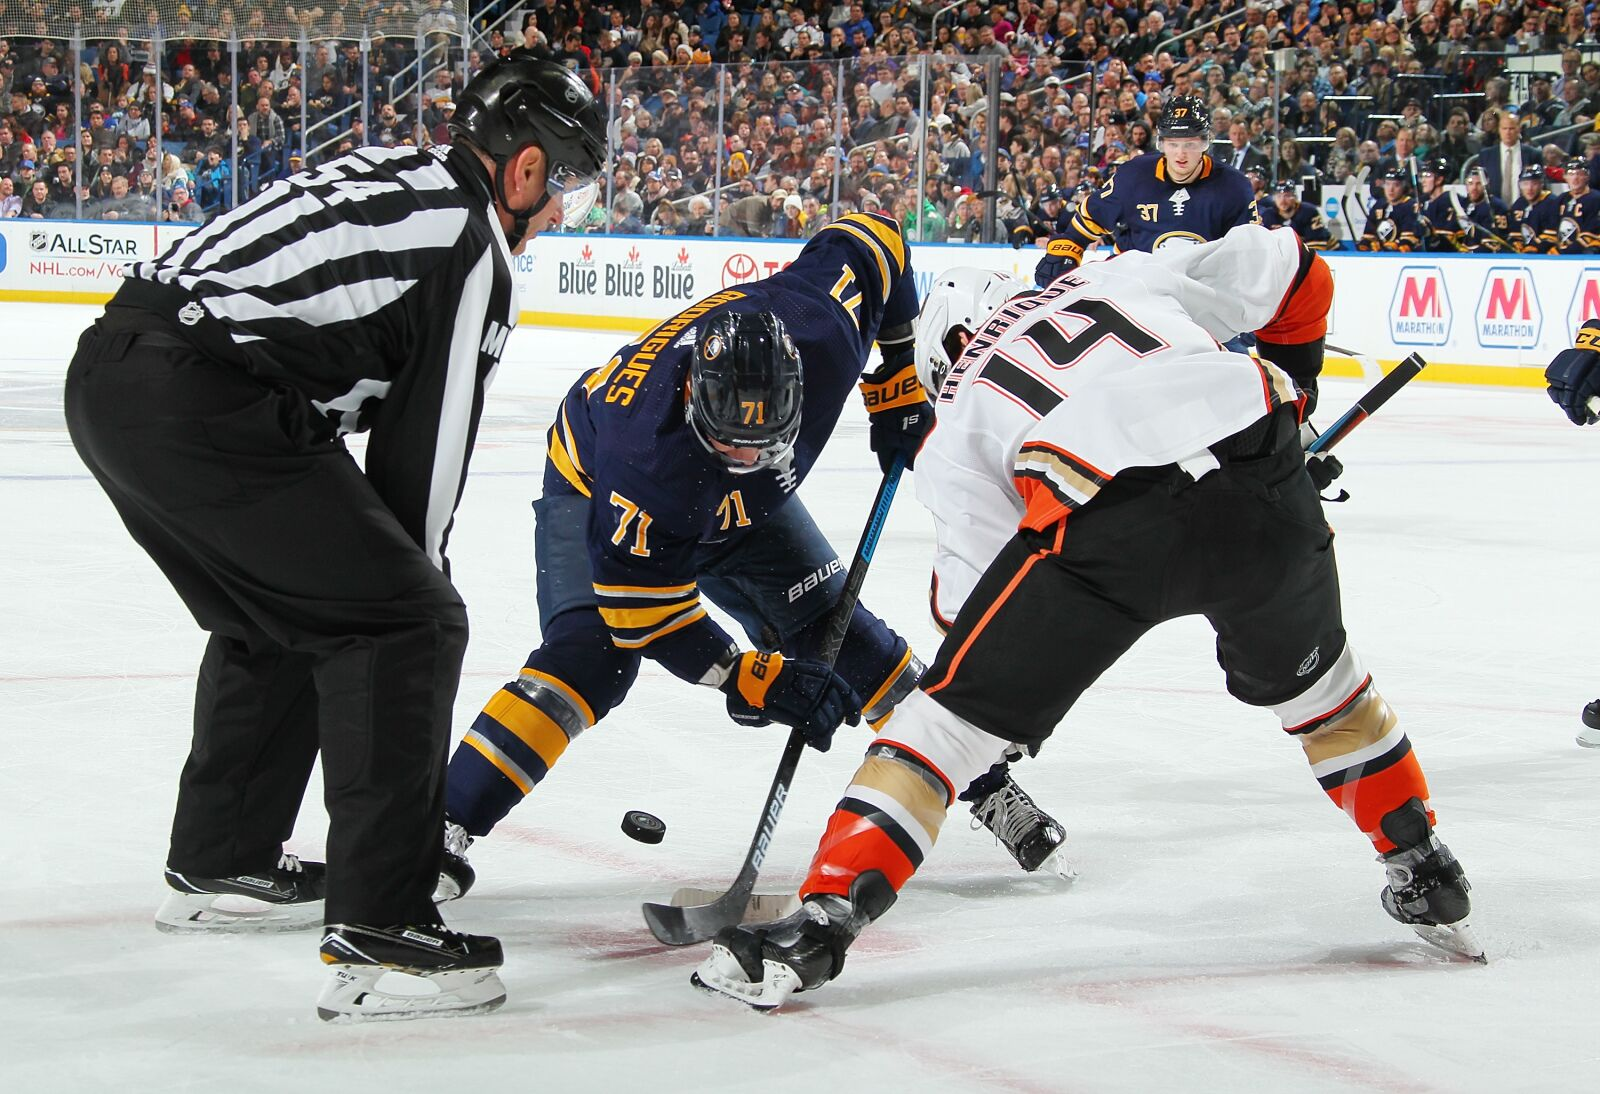 Anaheim Ducks: 3 Keys to Overcoming the Challenges Against the Buffalo Sabres